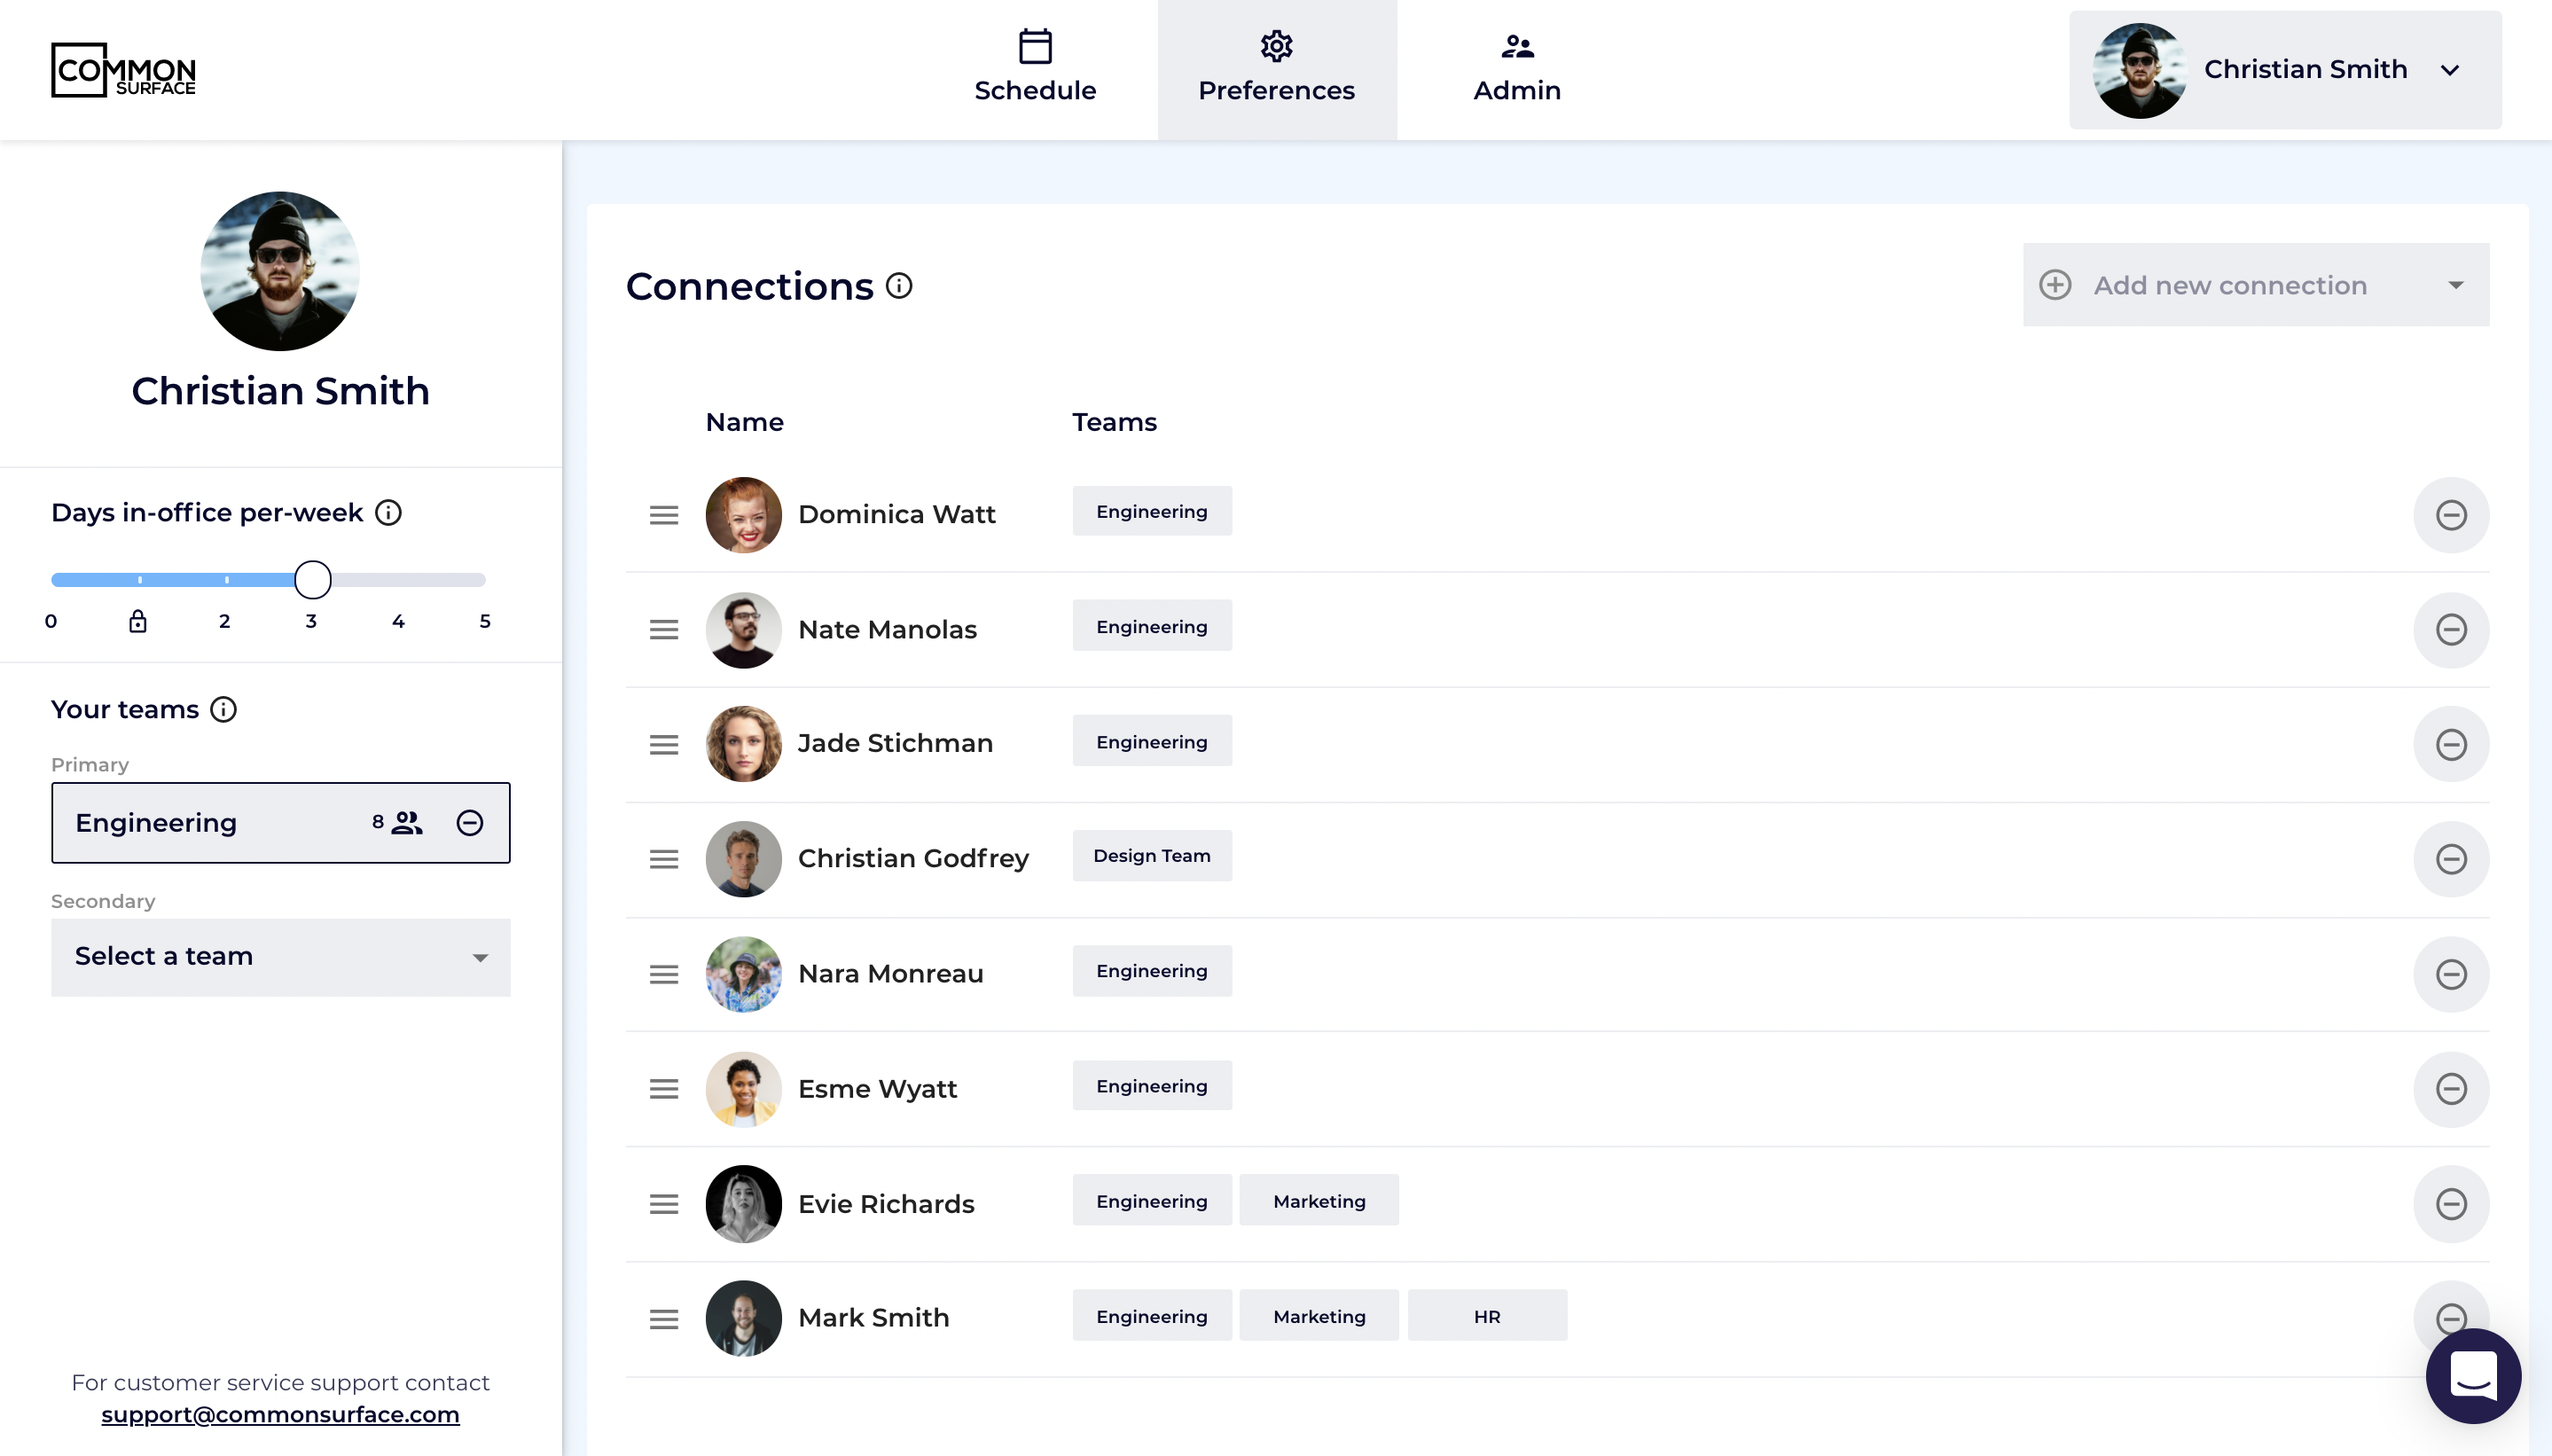 Users input their preferences into Common Surface: the number of days they spend in the office each week, their teams, and their connections. Common Surface takes this information and generates a tailored schedule for all employees.